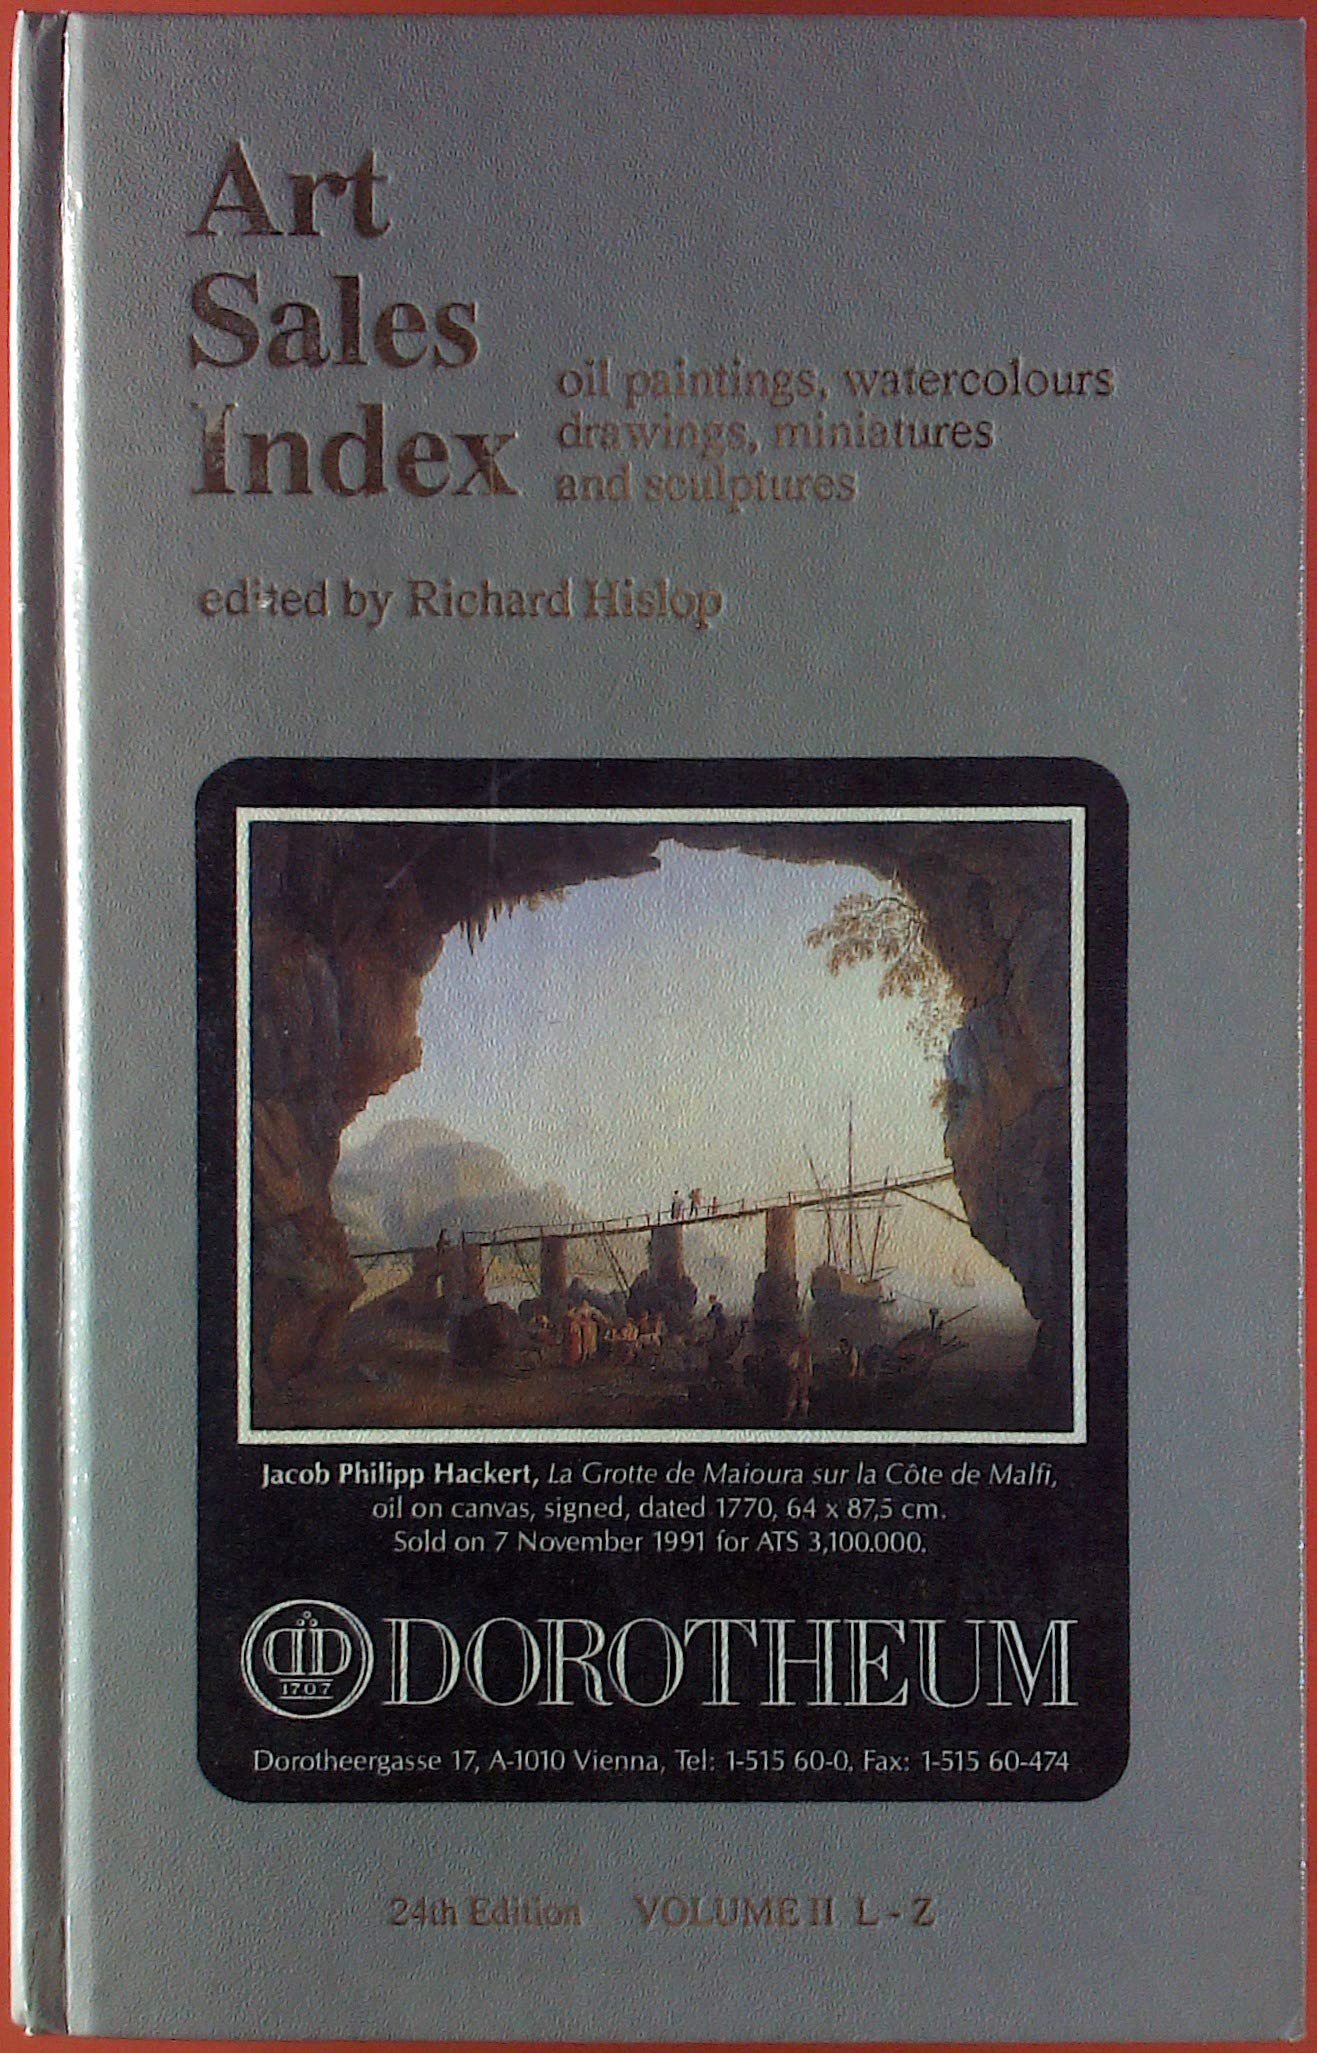 Art Sales Index 1991-92: Amazon co uk: Richard Hislop: 9780903872447